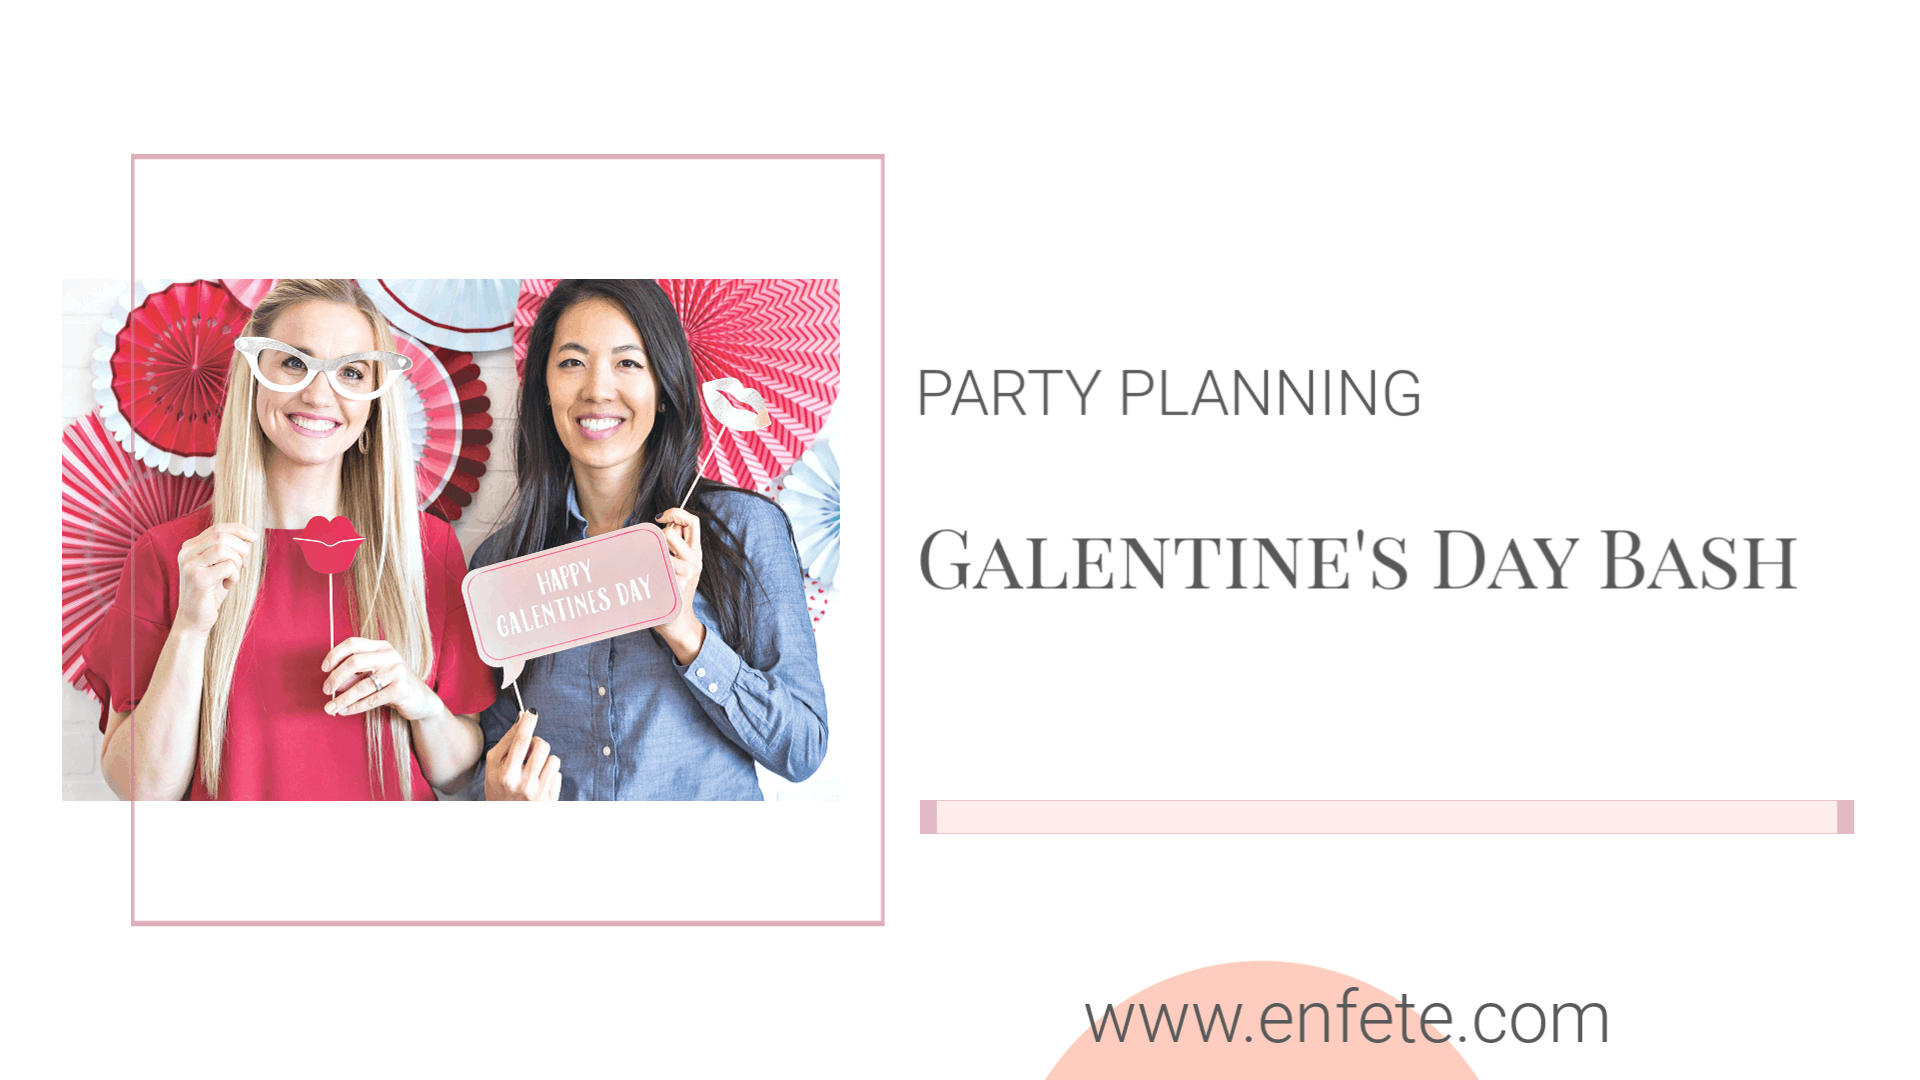 Galentine's Day Bash